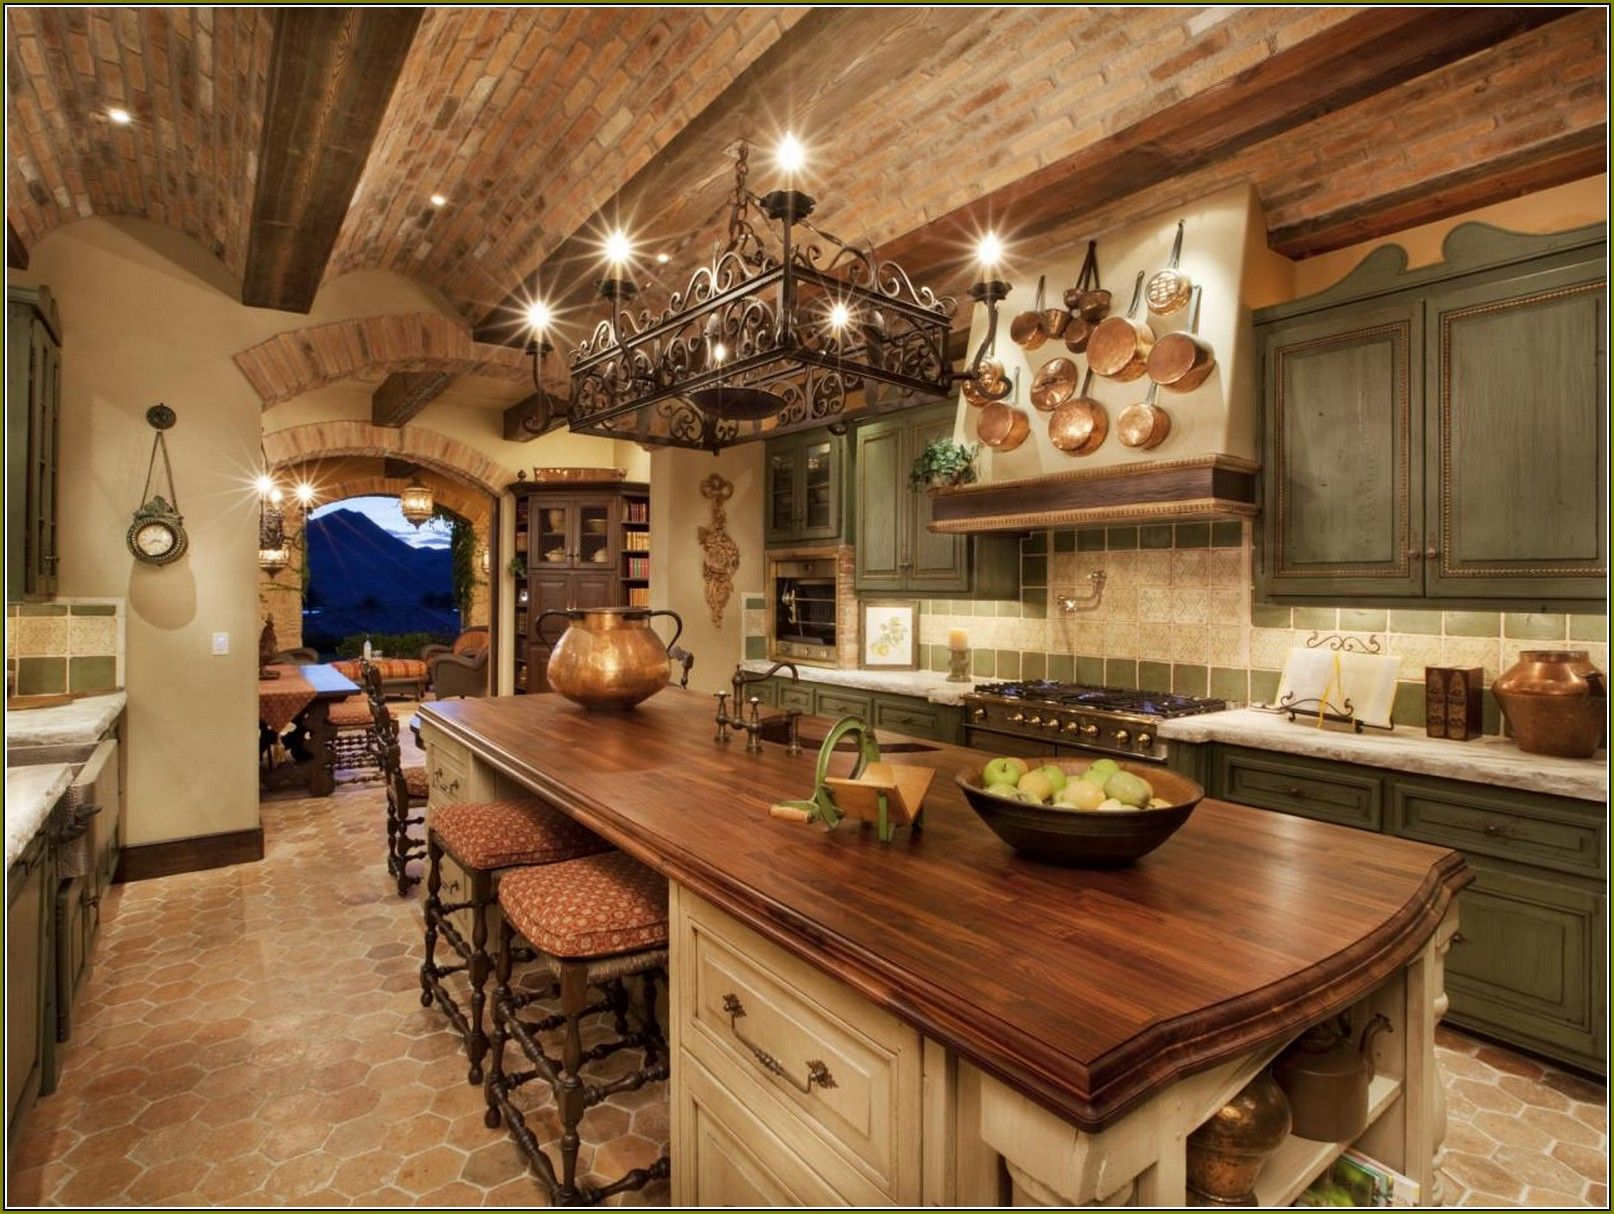 free best of rustic kitchen cabinets about rustic kitchen ideas #0: 5ced1d1cc1225330a9018b72f29e88ae jpg